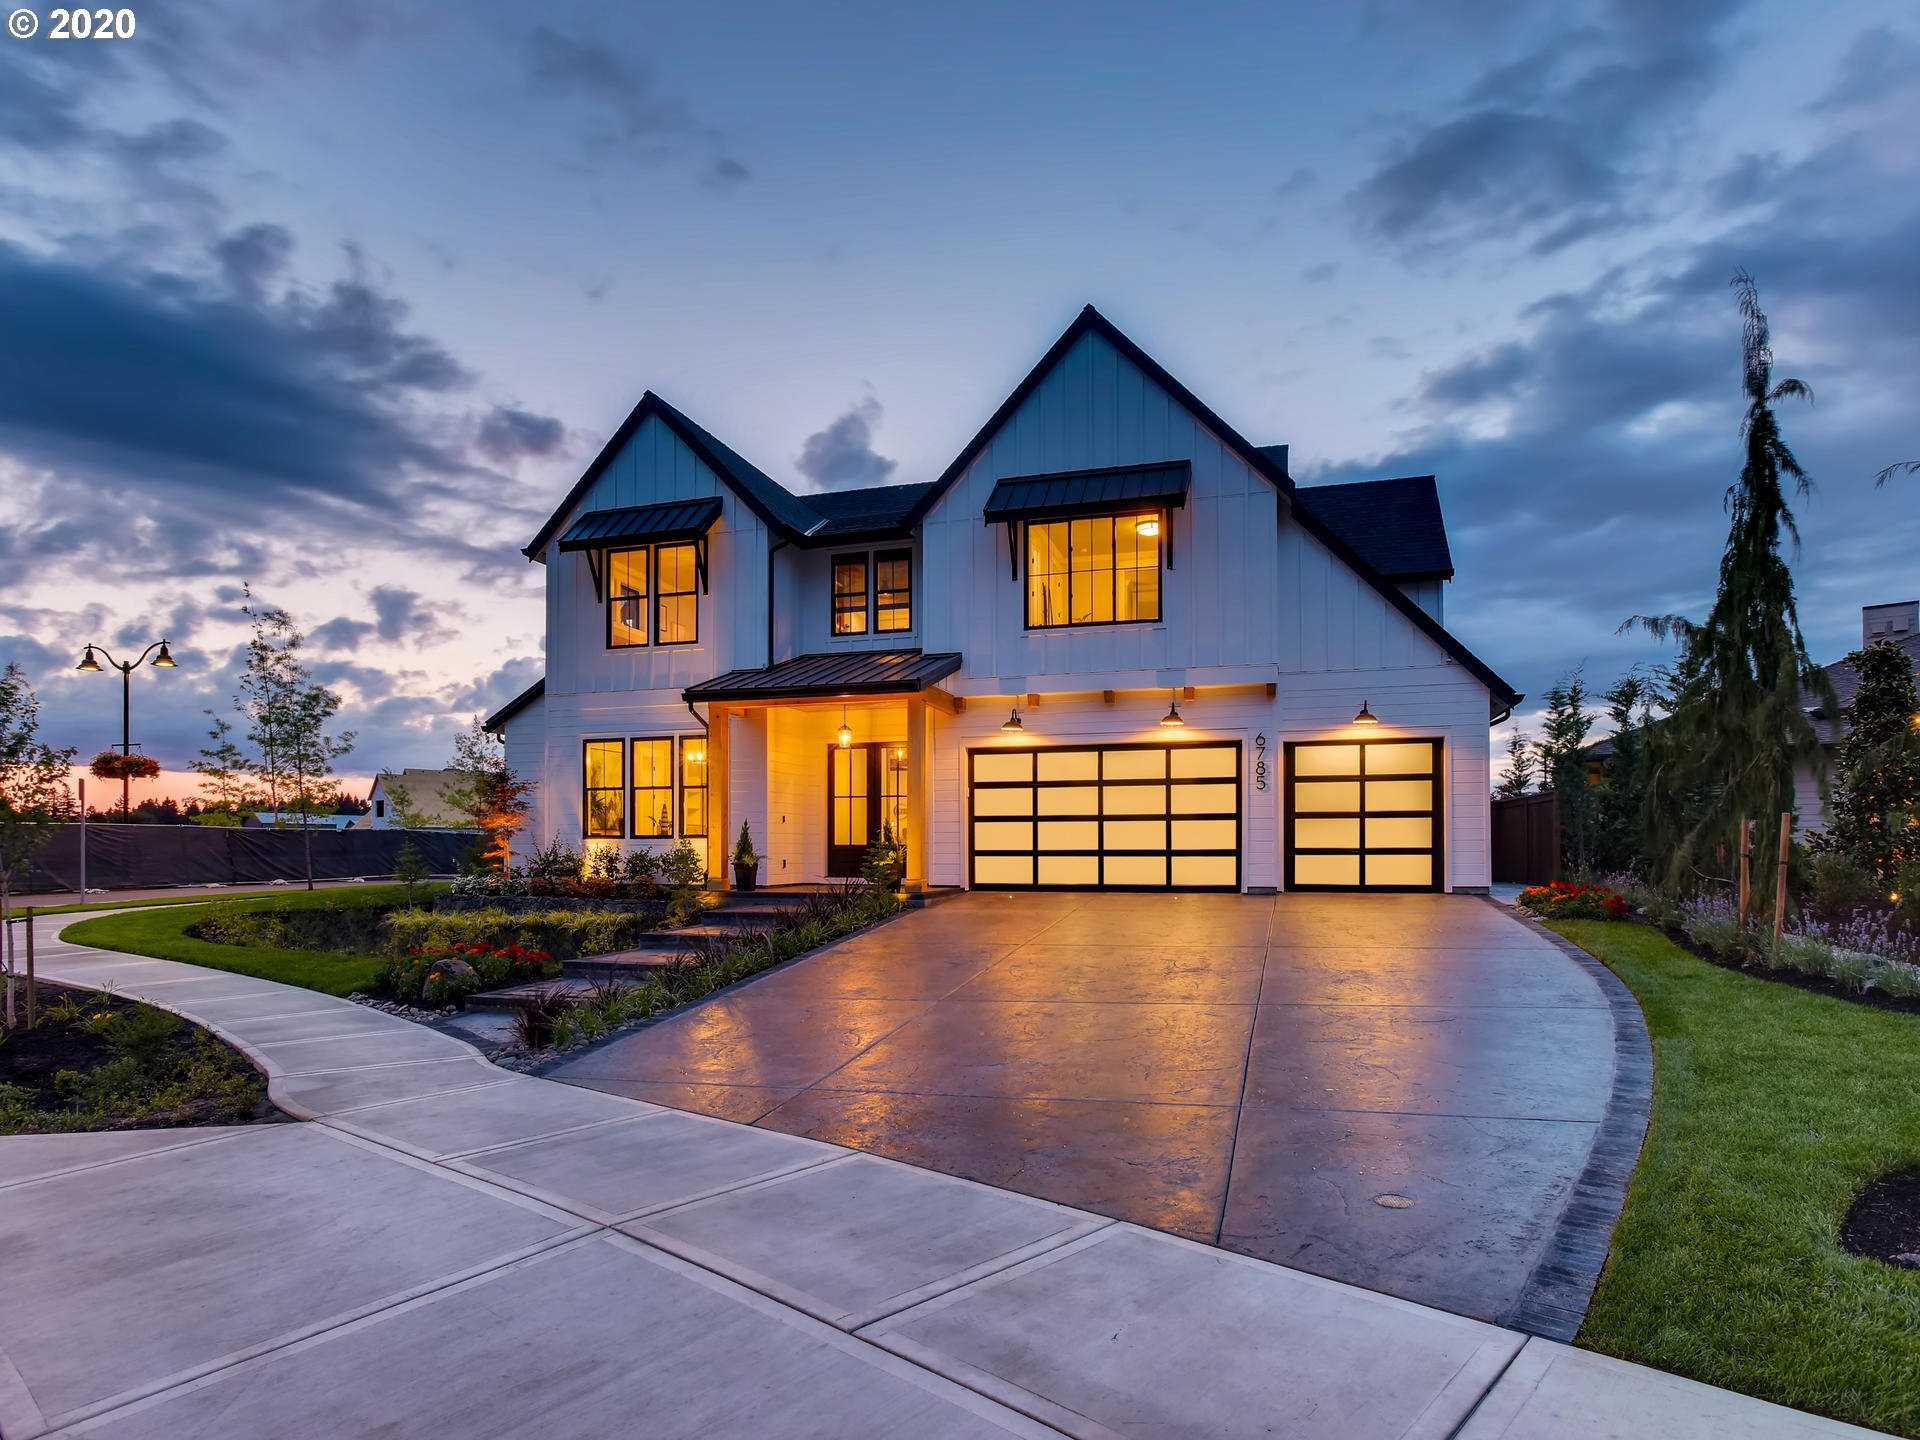 $1,399,900 - 5Br/5Ba -  for Sale in Stafford Meadows At Frog Pond, Wilsonville